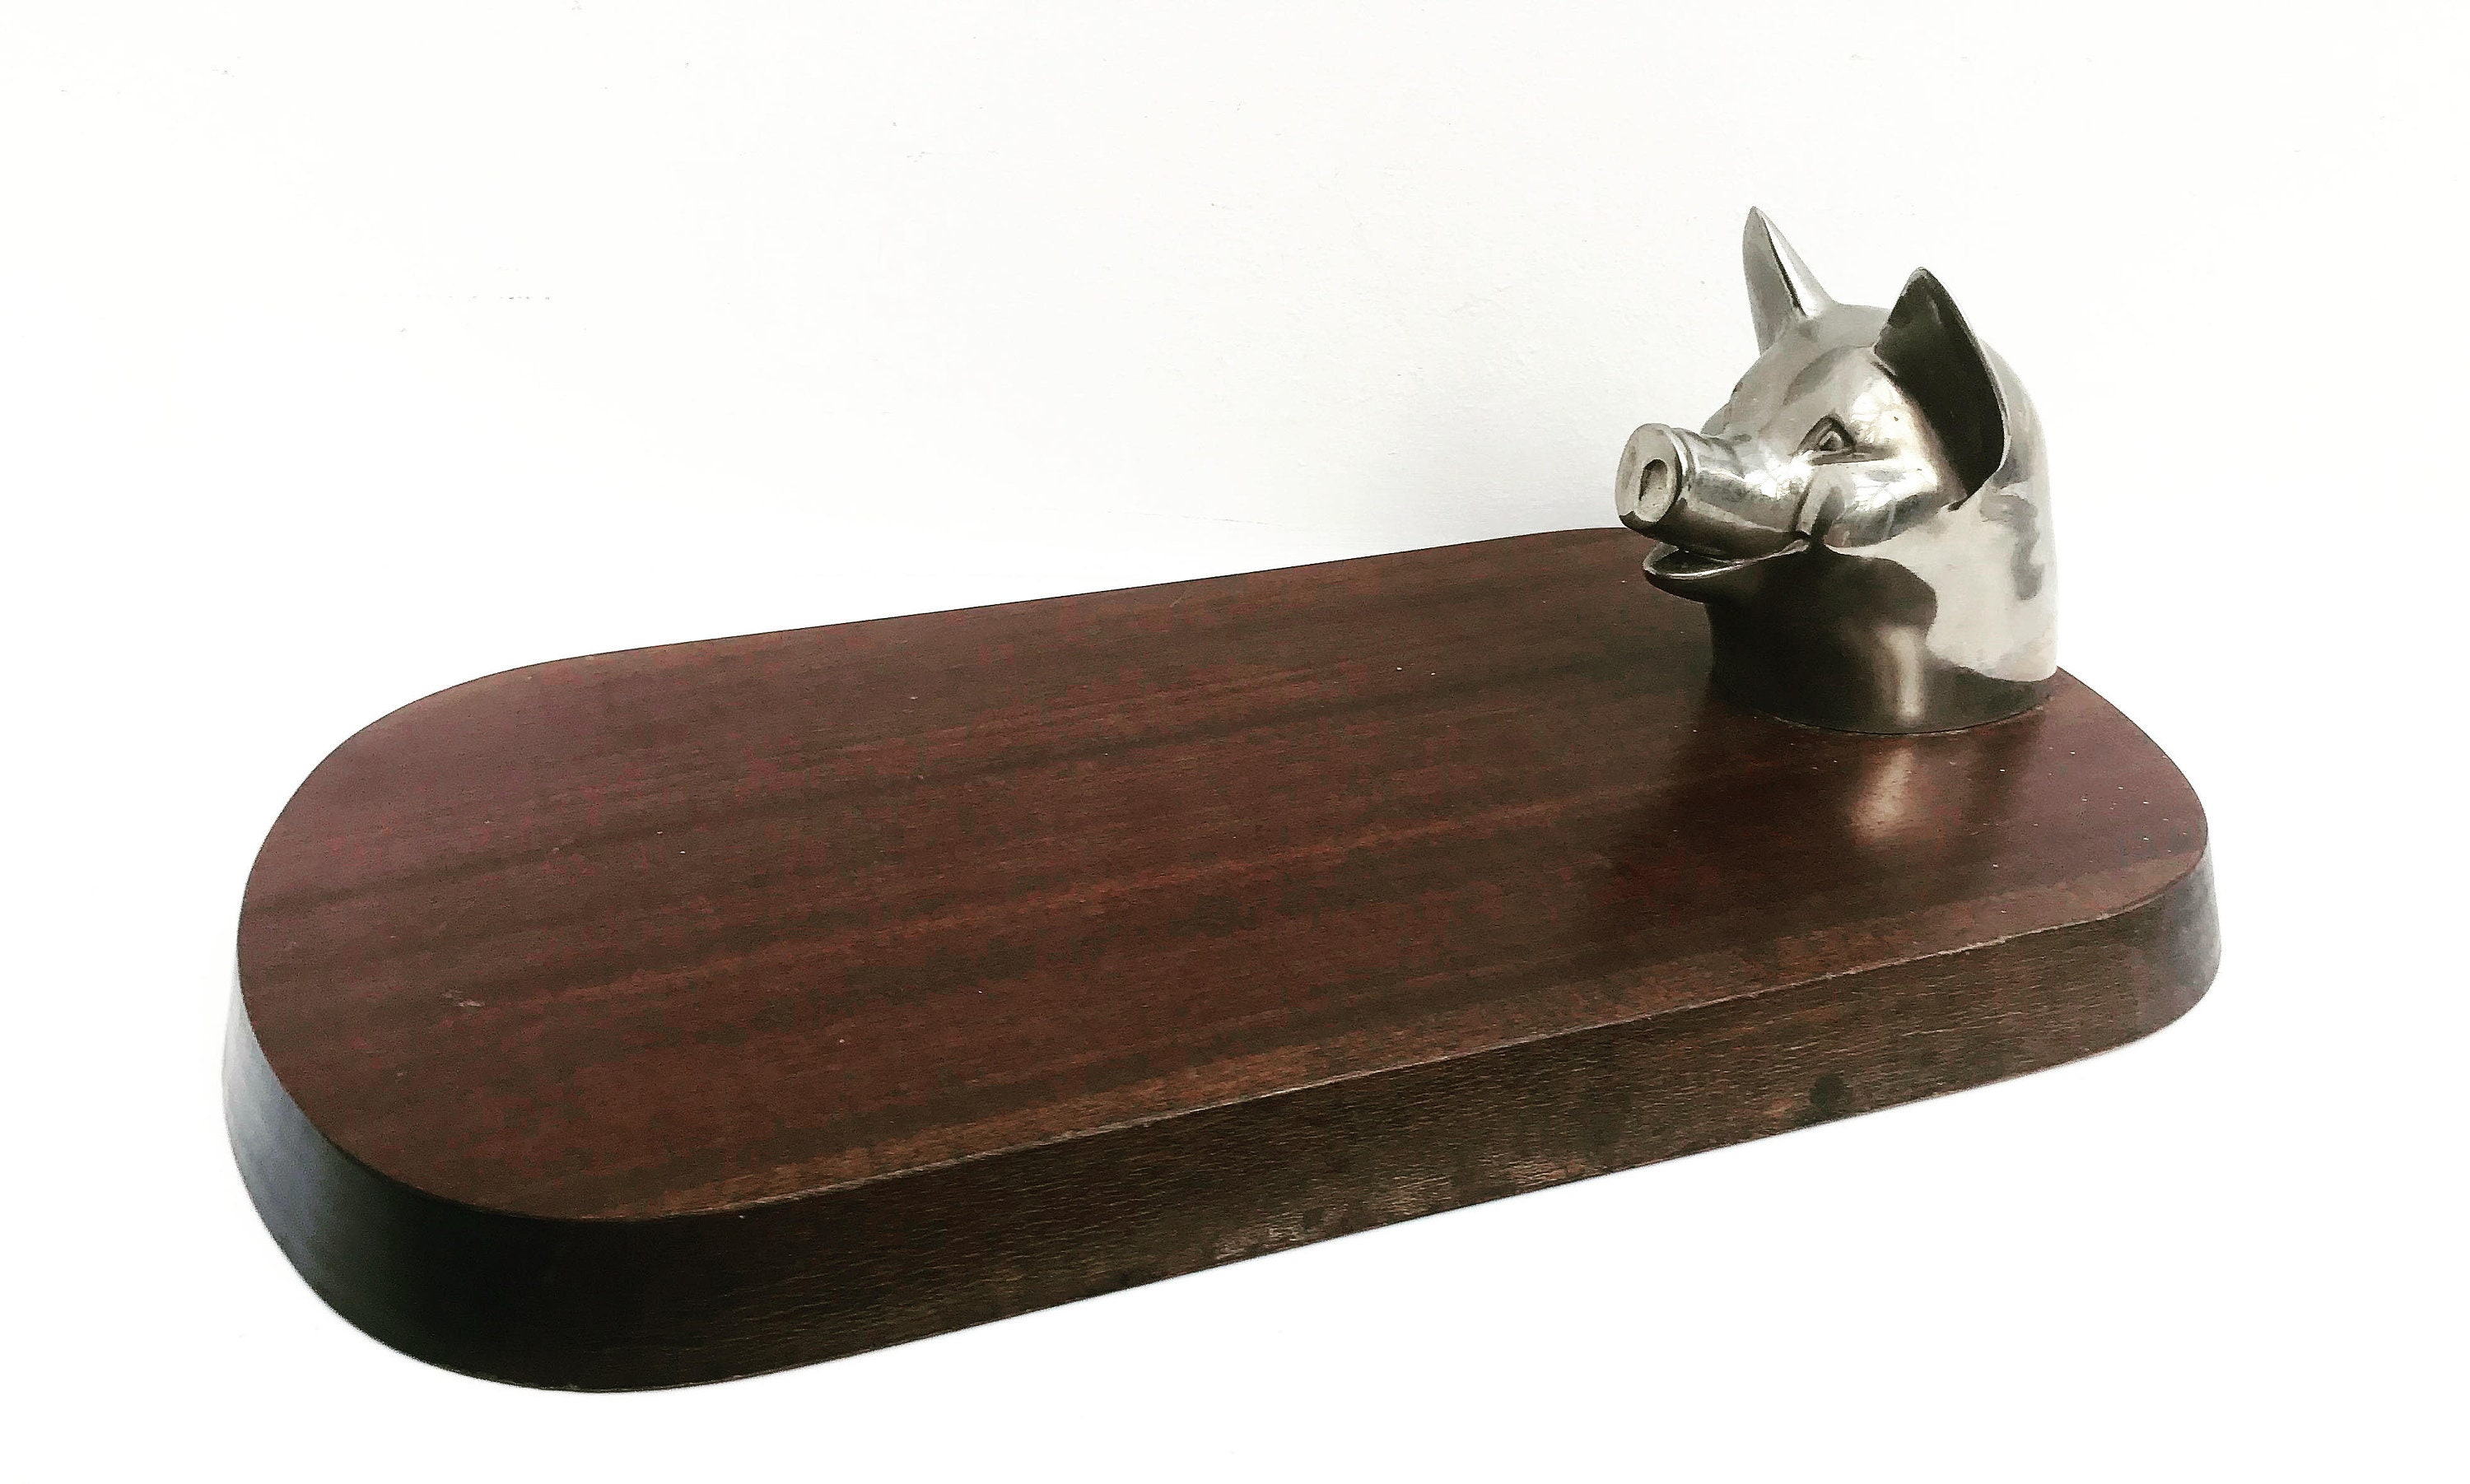 Cutting Board Chopping Wooden And Metal Pig Made In France Cutting Board Serving Display Ham Party Charcuterie Cheese Gift For Him